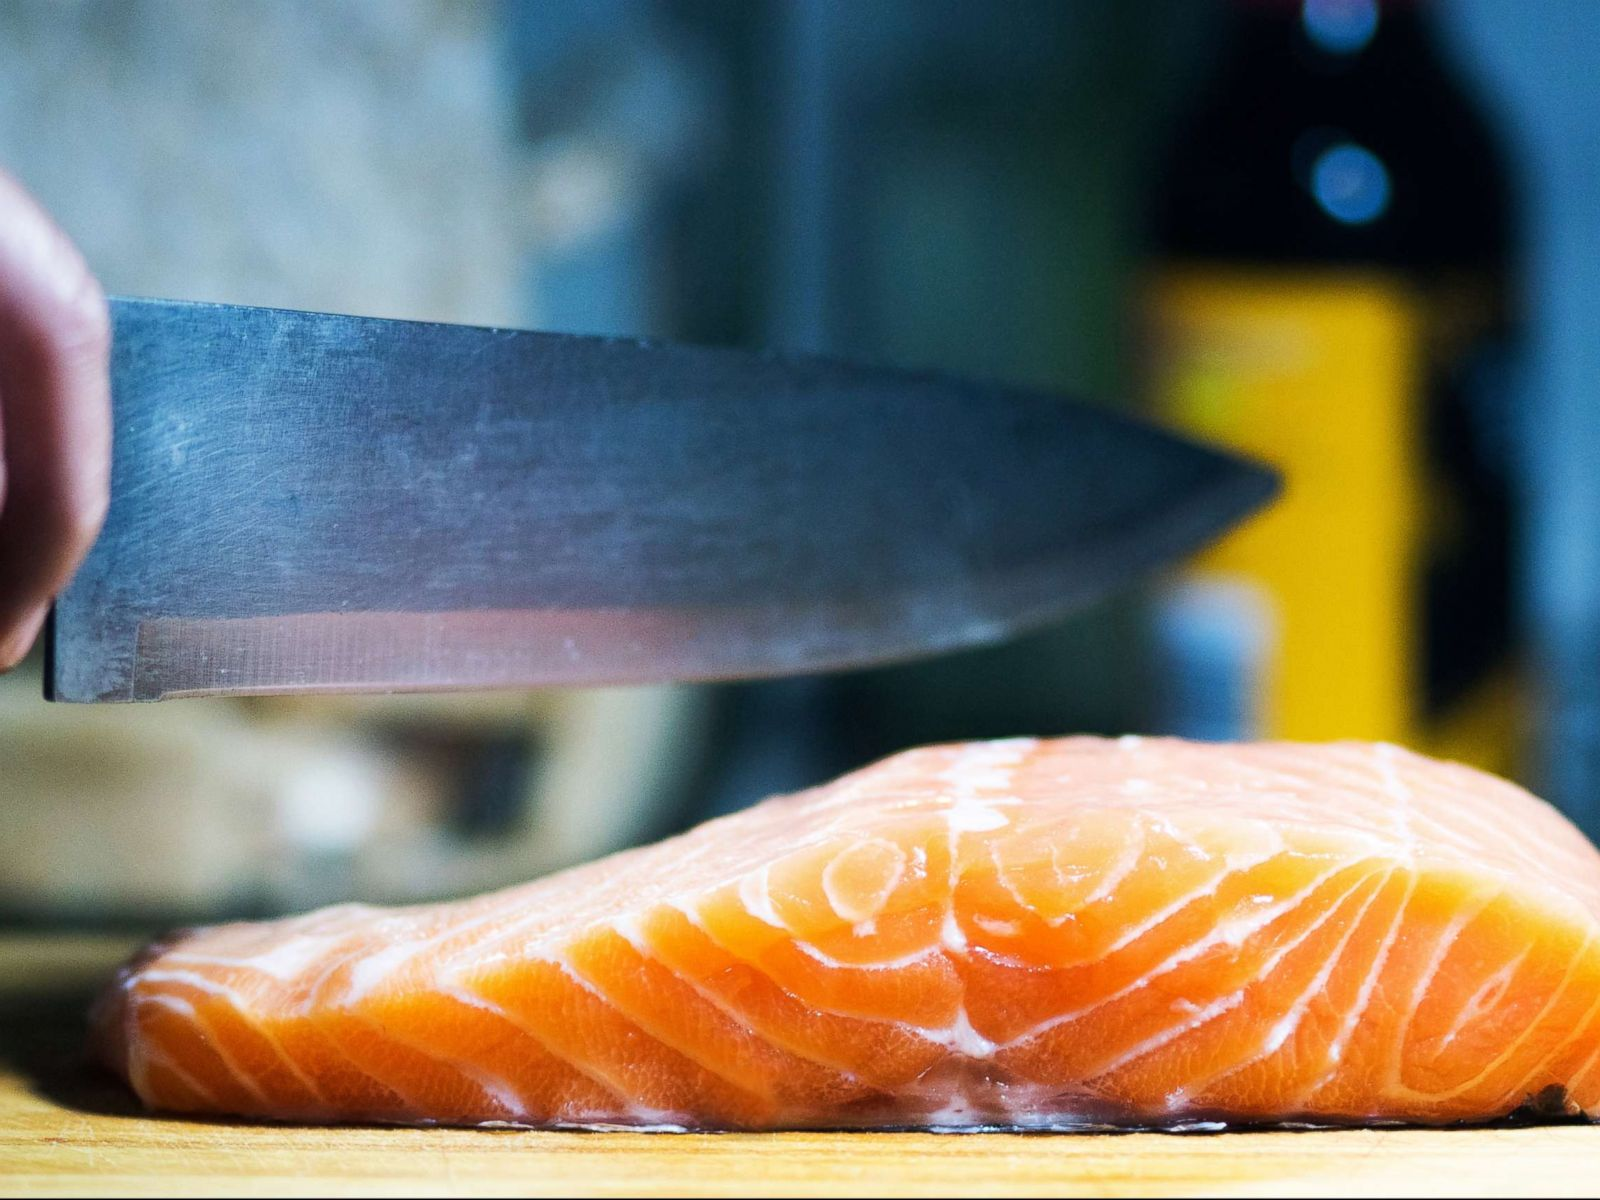 How can smelling fish cause an allergic reaction? Here's